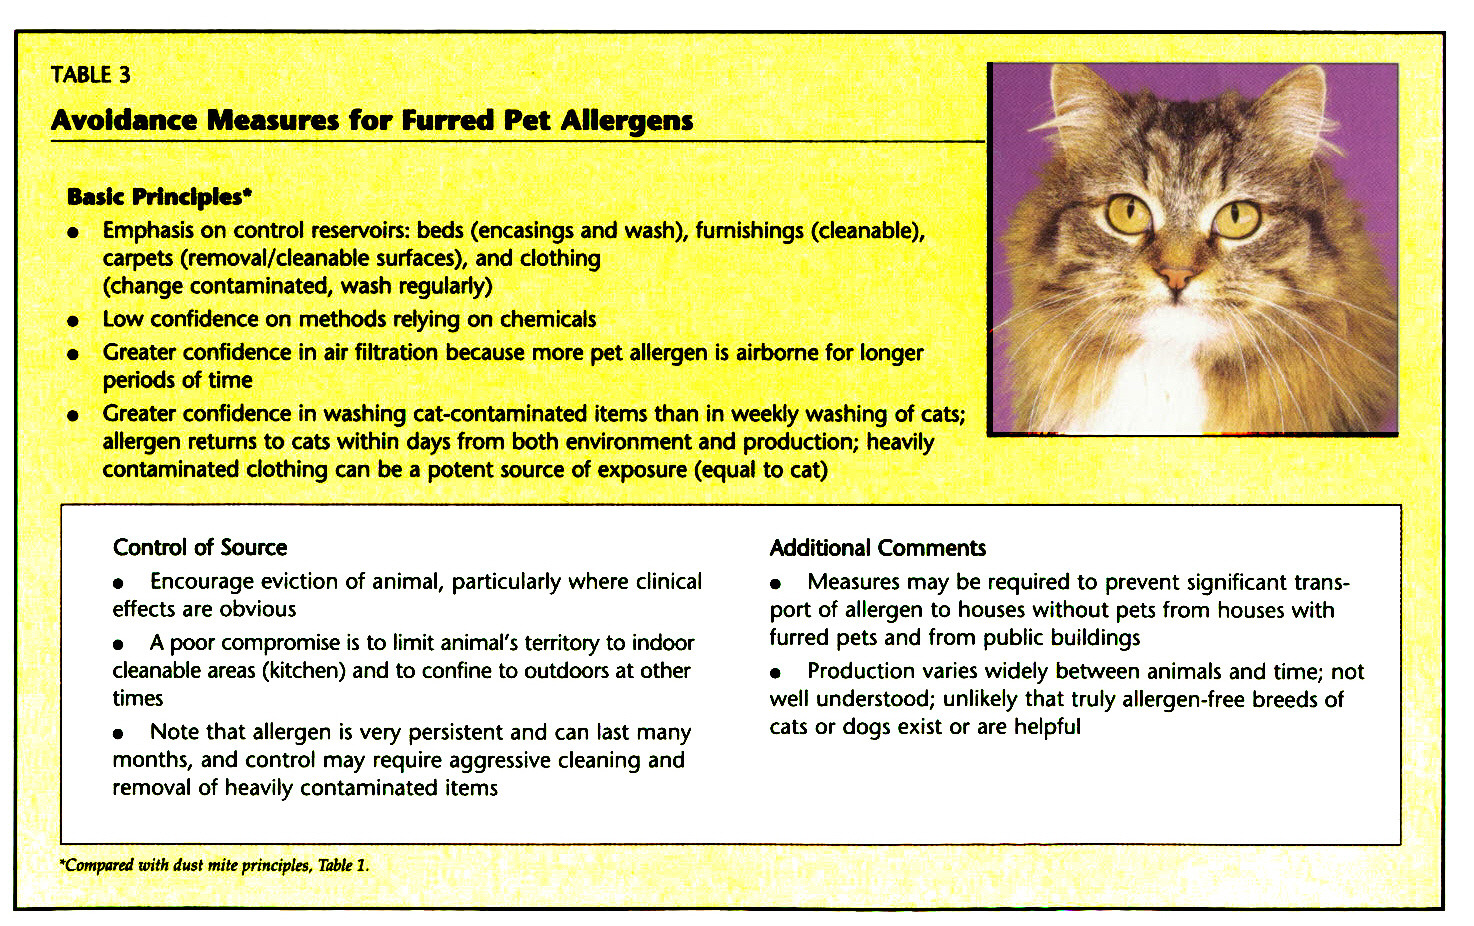 TABLE 3Avoidance Measures for Furred Pet Allergens